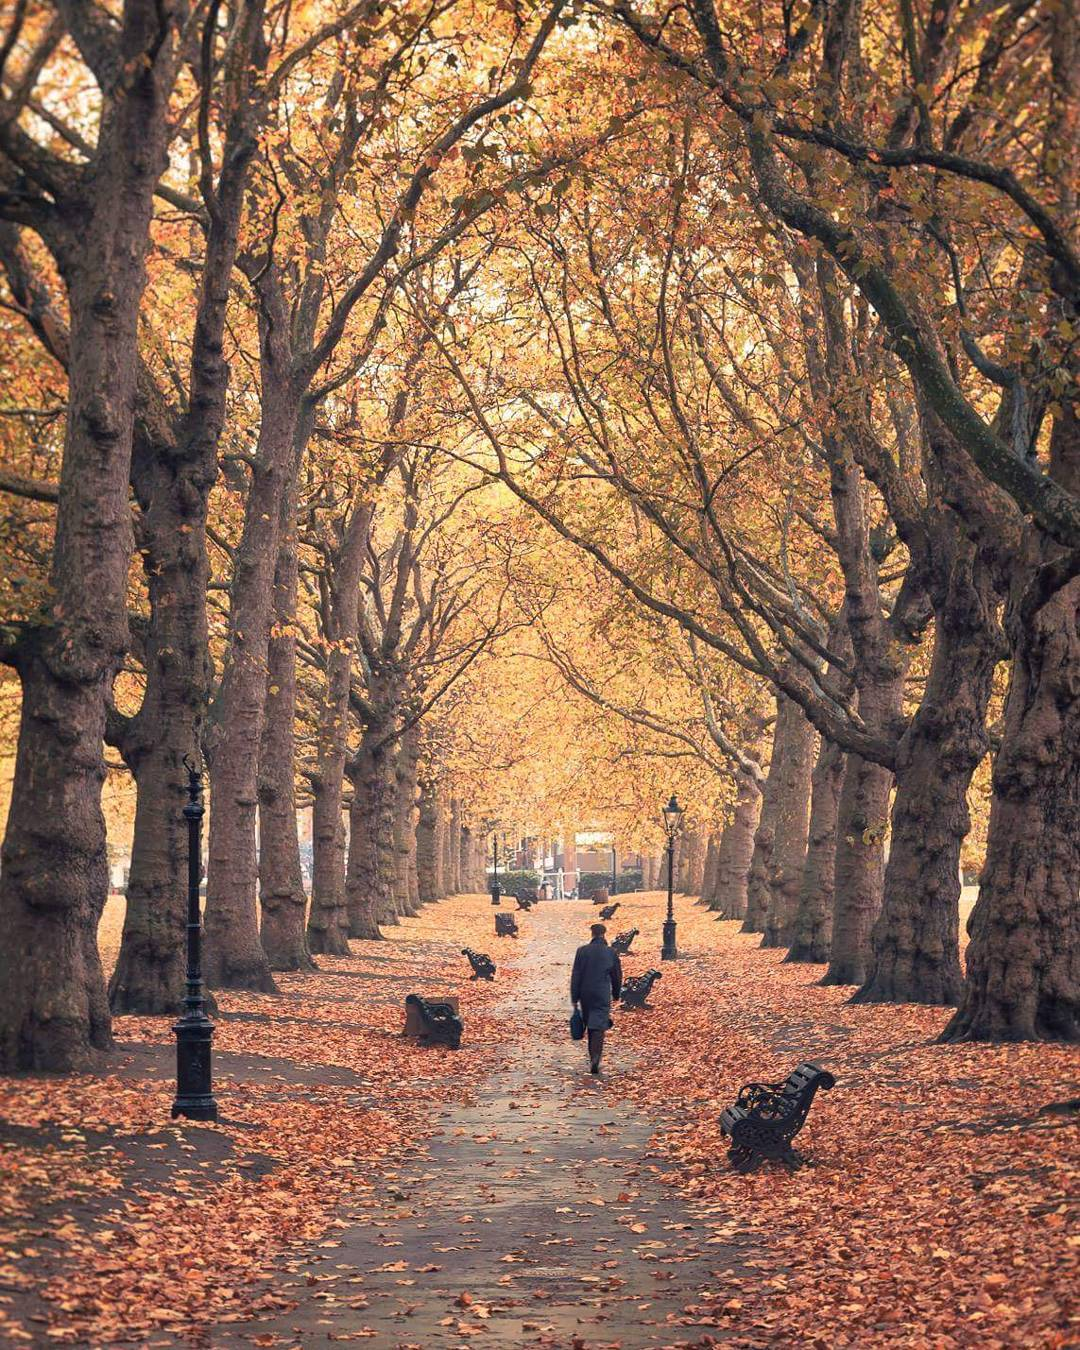 Green Park in the autumn